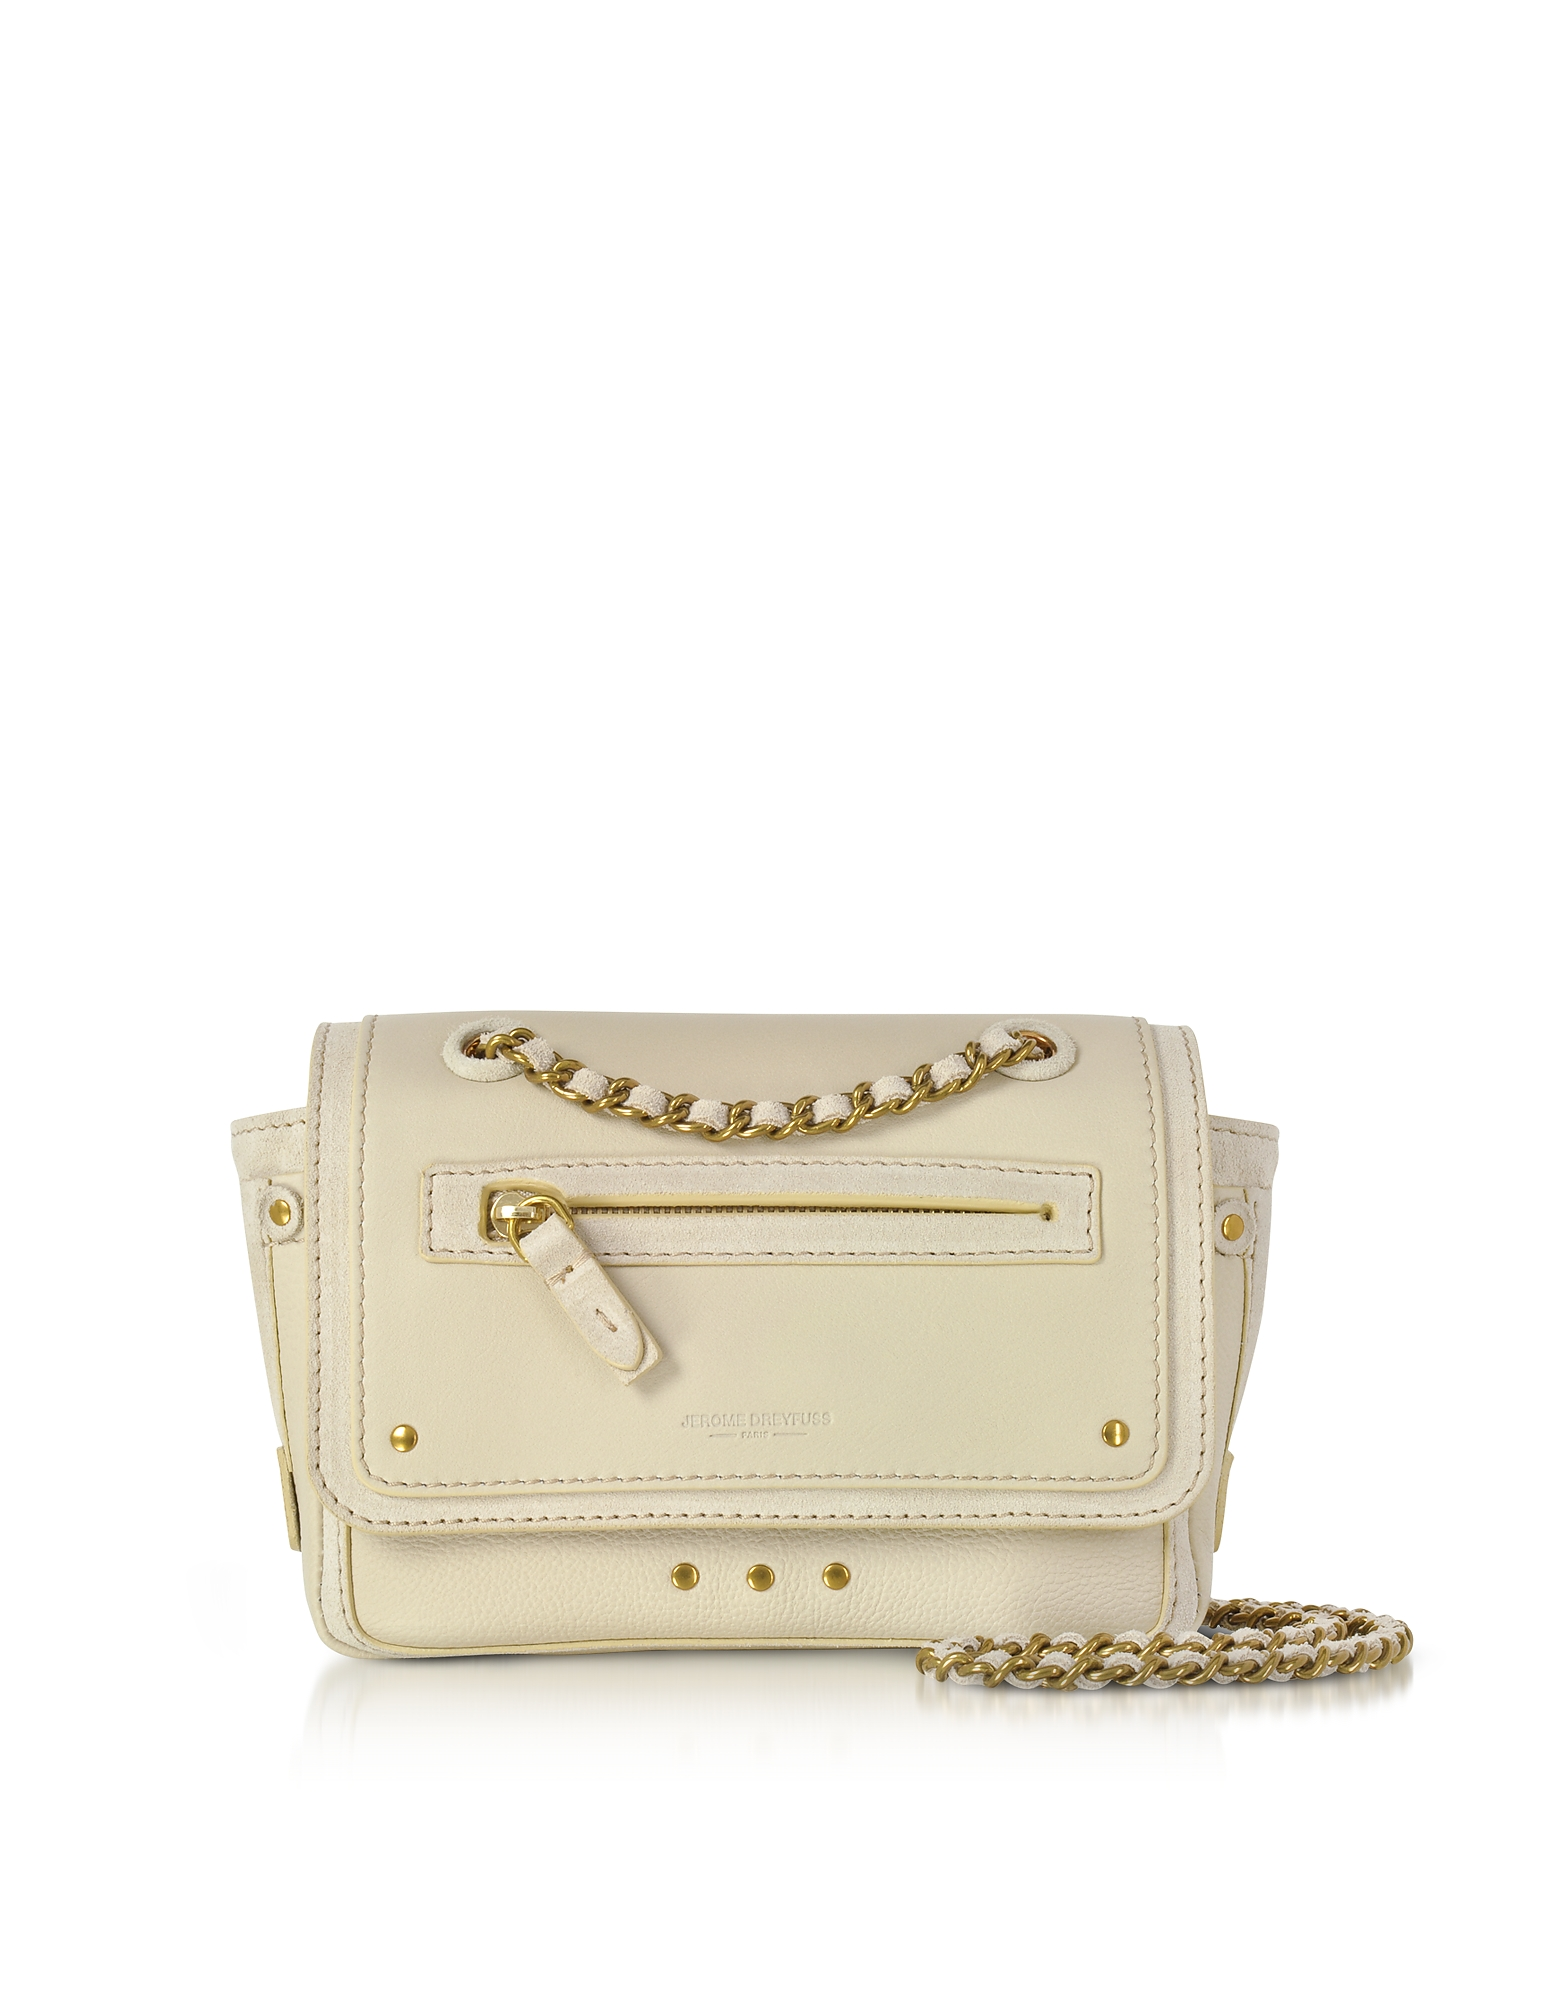 Jerome Dreyfuss Handbags, Benji Cream Leather and Suede Mini Crossbody Bag